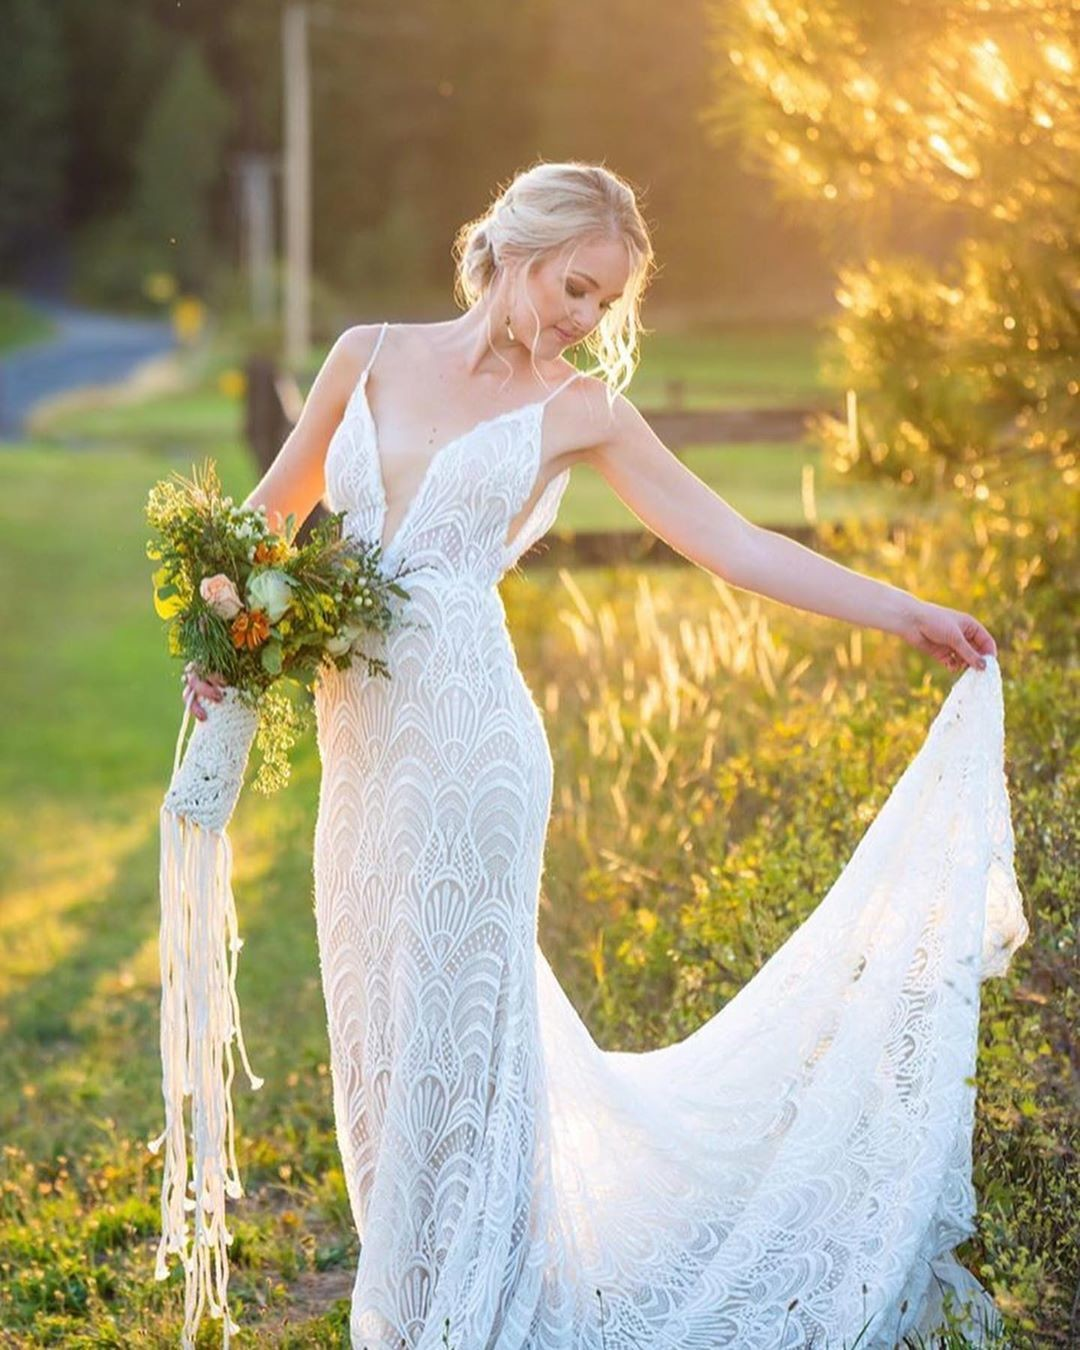 Our #lamourbride looking dreamy in